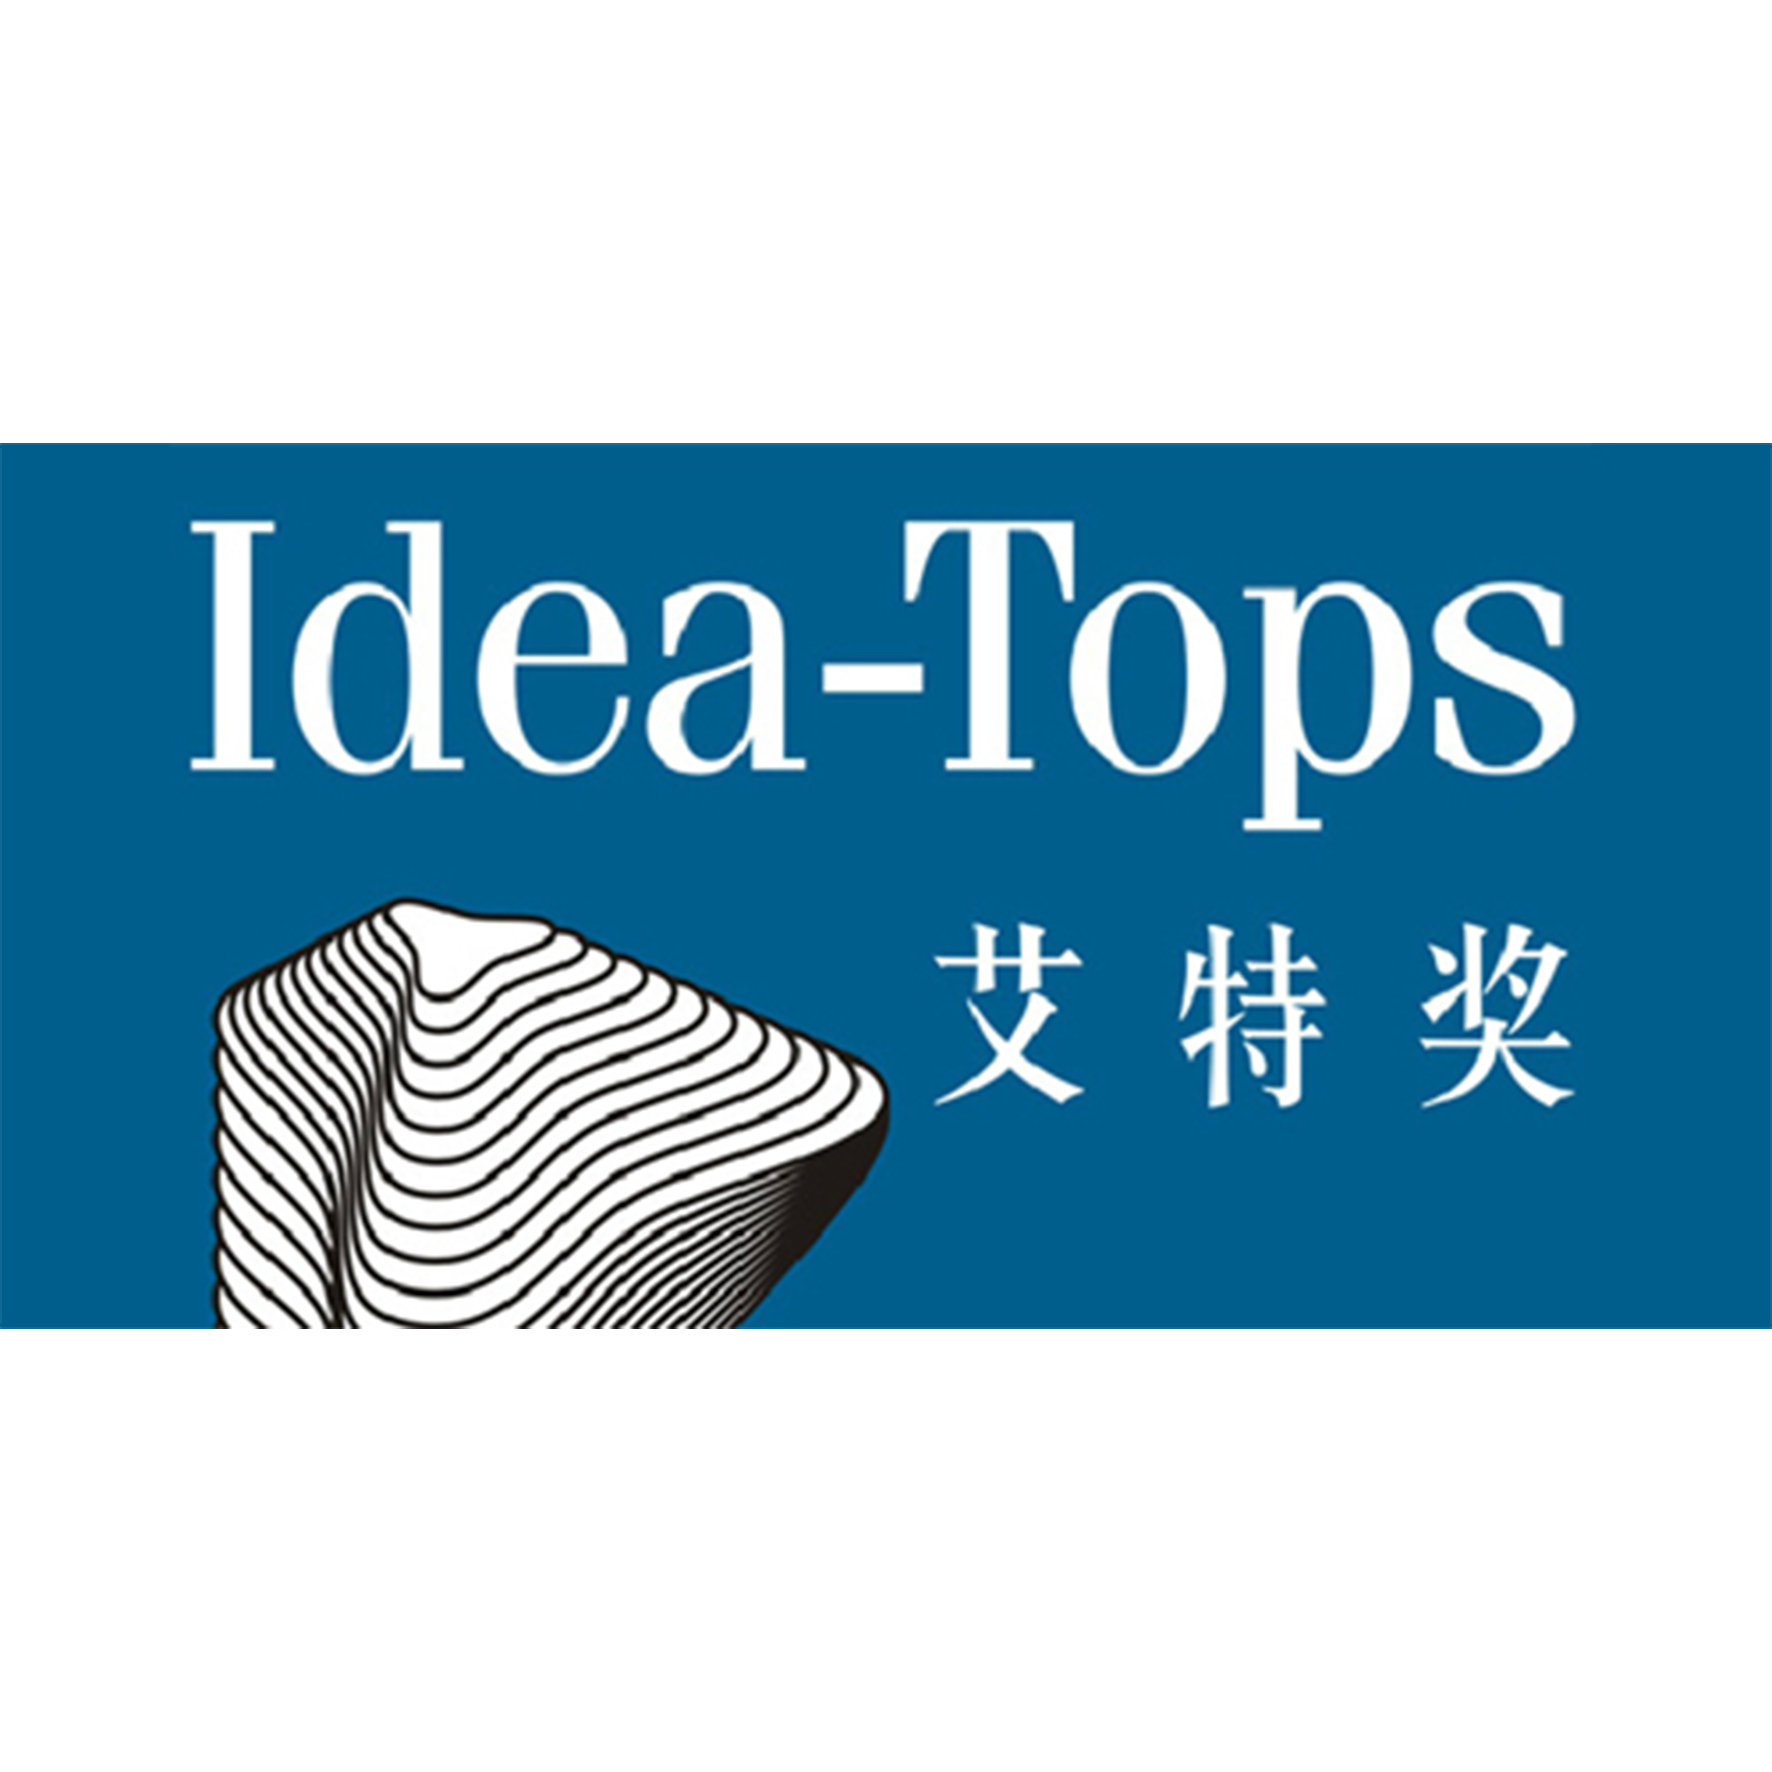 Best Design Finalist of Apartment - 2015 International Space Design Award, Idea-Tops (最佳公寓设计入围奖 - 2015年国际空间设计大奖 艾特奖)